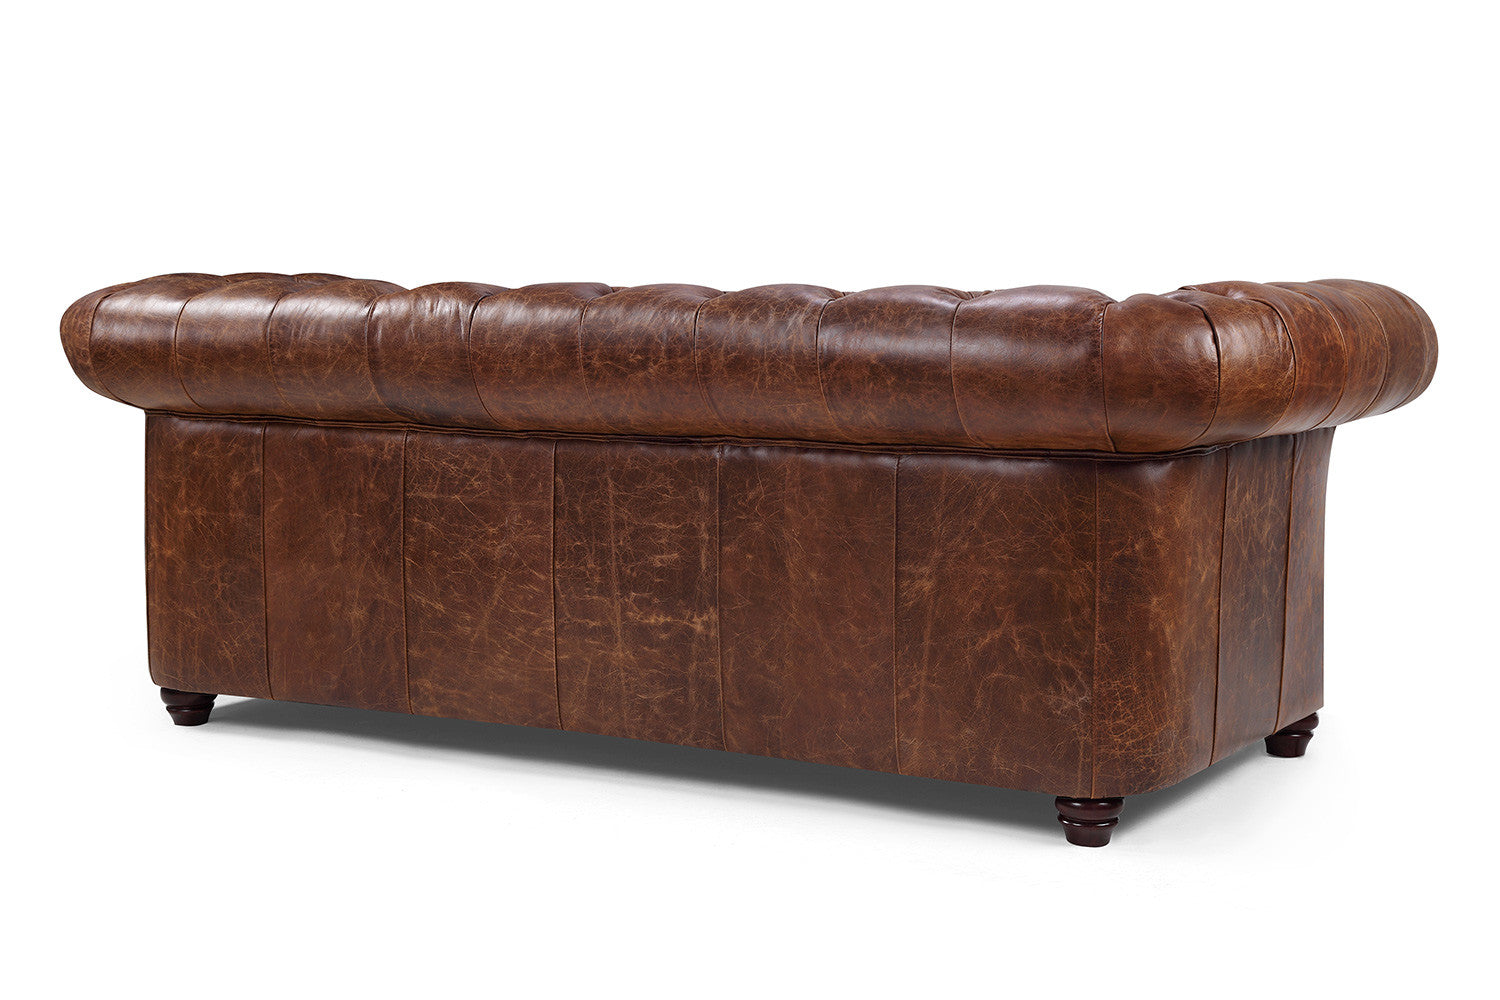 Delicieux Back Of The Westminster Chesterfield Sofa By Rose U0026 Moore